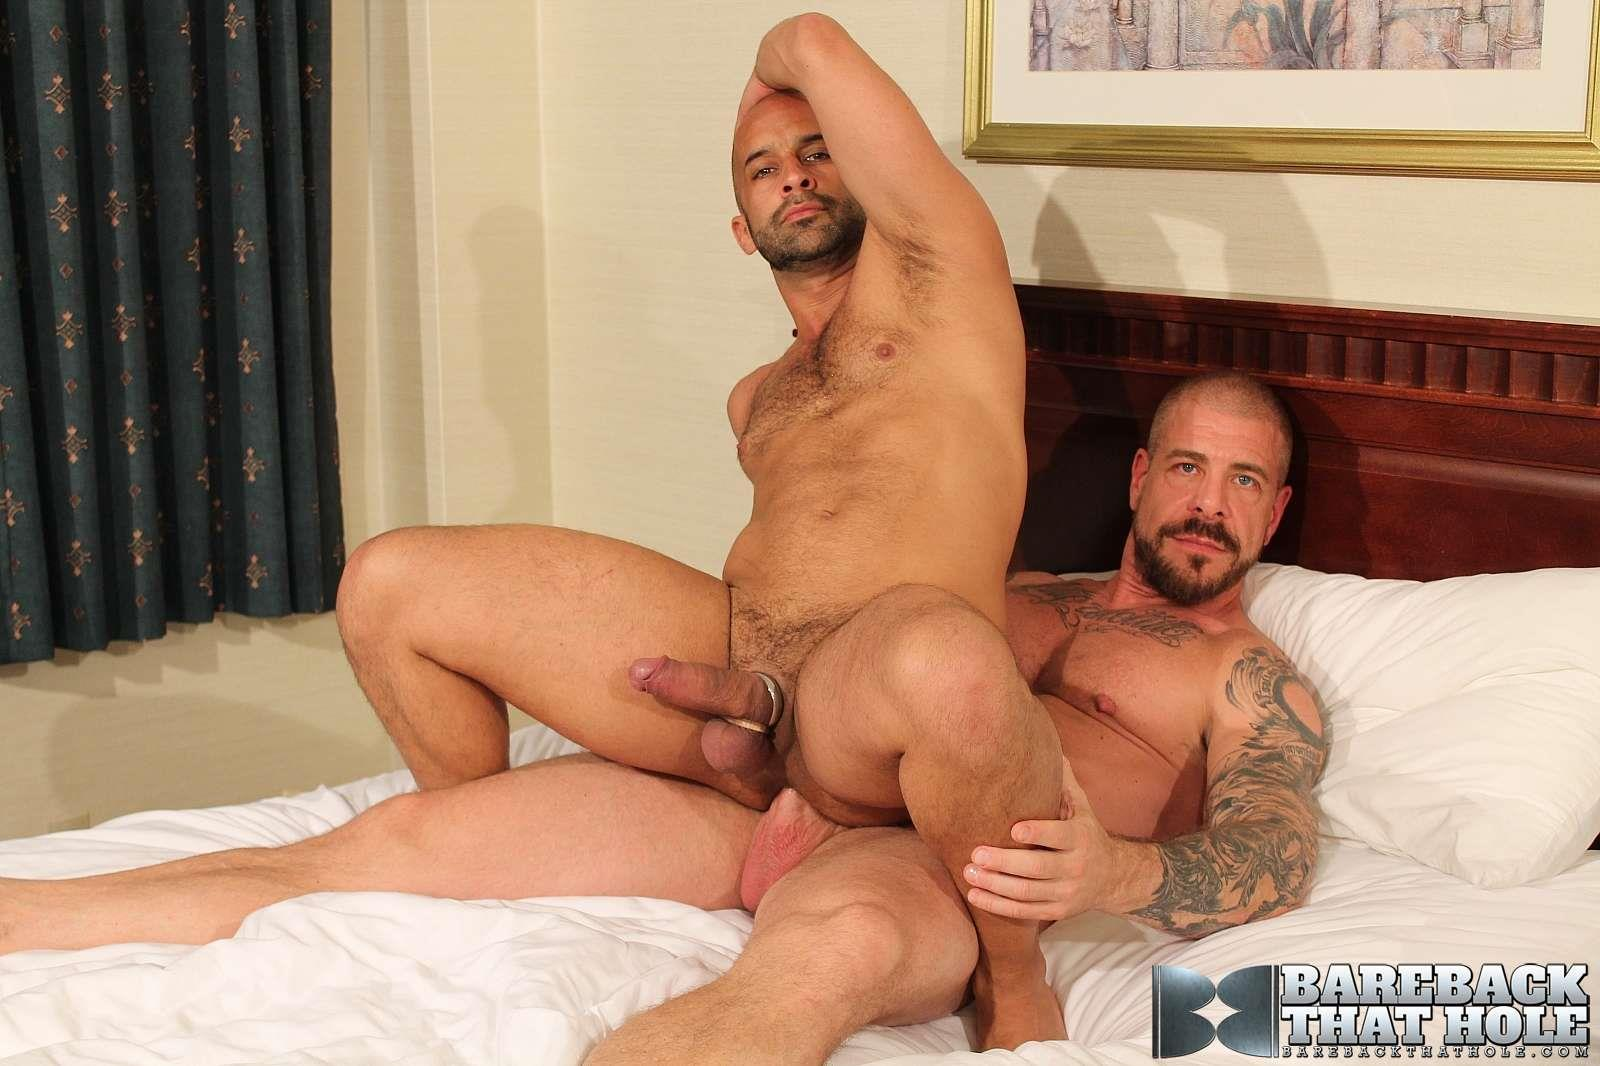 Bareback-That-Hole-Bareback-That-Hole-Rocco-Steele-and-Igor-Lukas-Huge-Cock-Barebacking-A-Tight-Ass-Amateur-Gay-Porn-23 Rocco Steele Tearing Up A Tight Ass With His Huge Cock